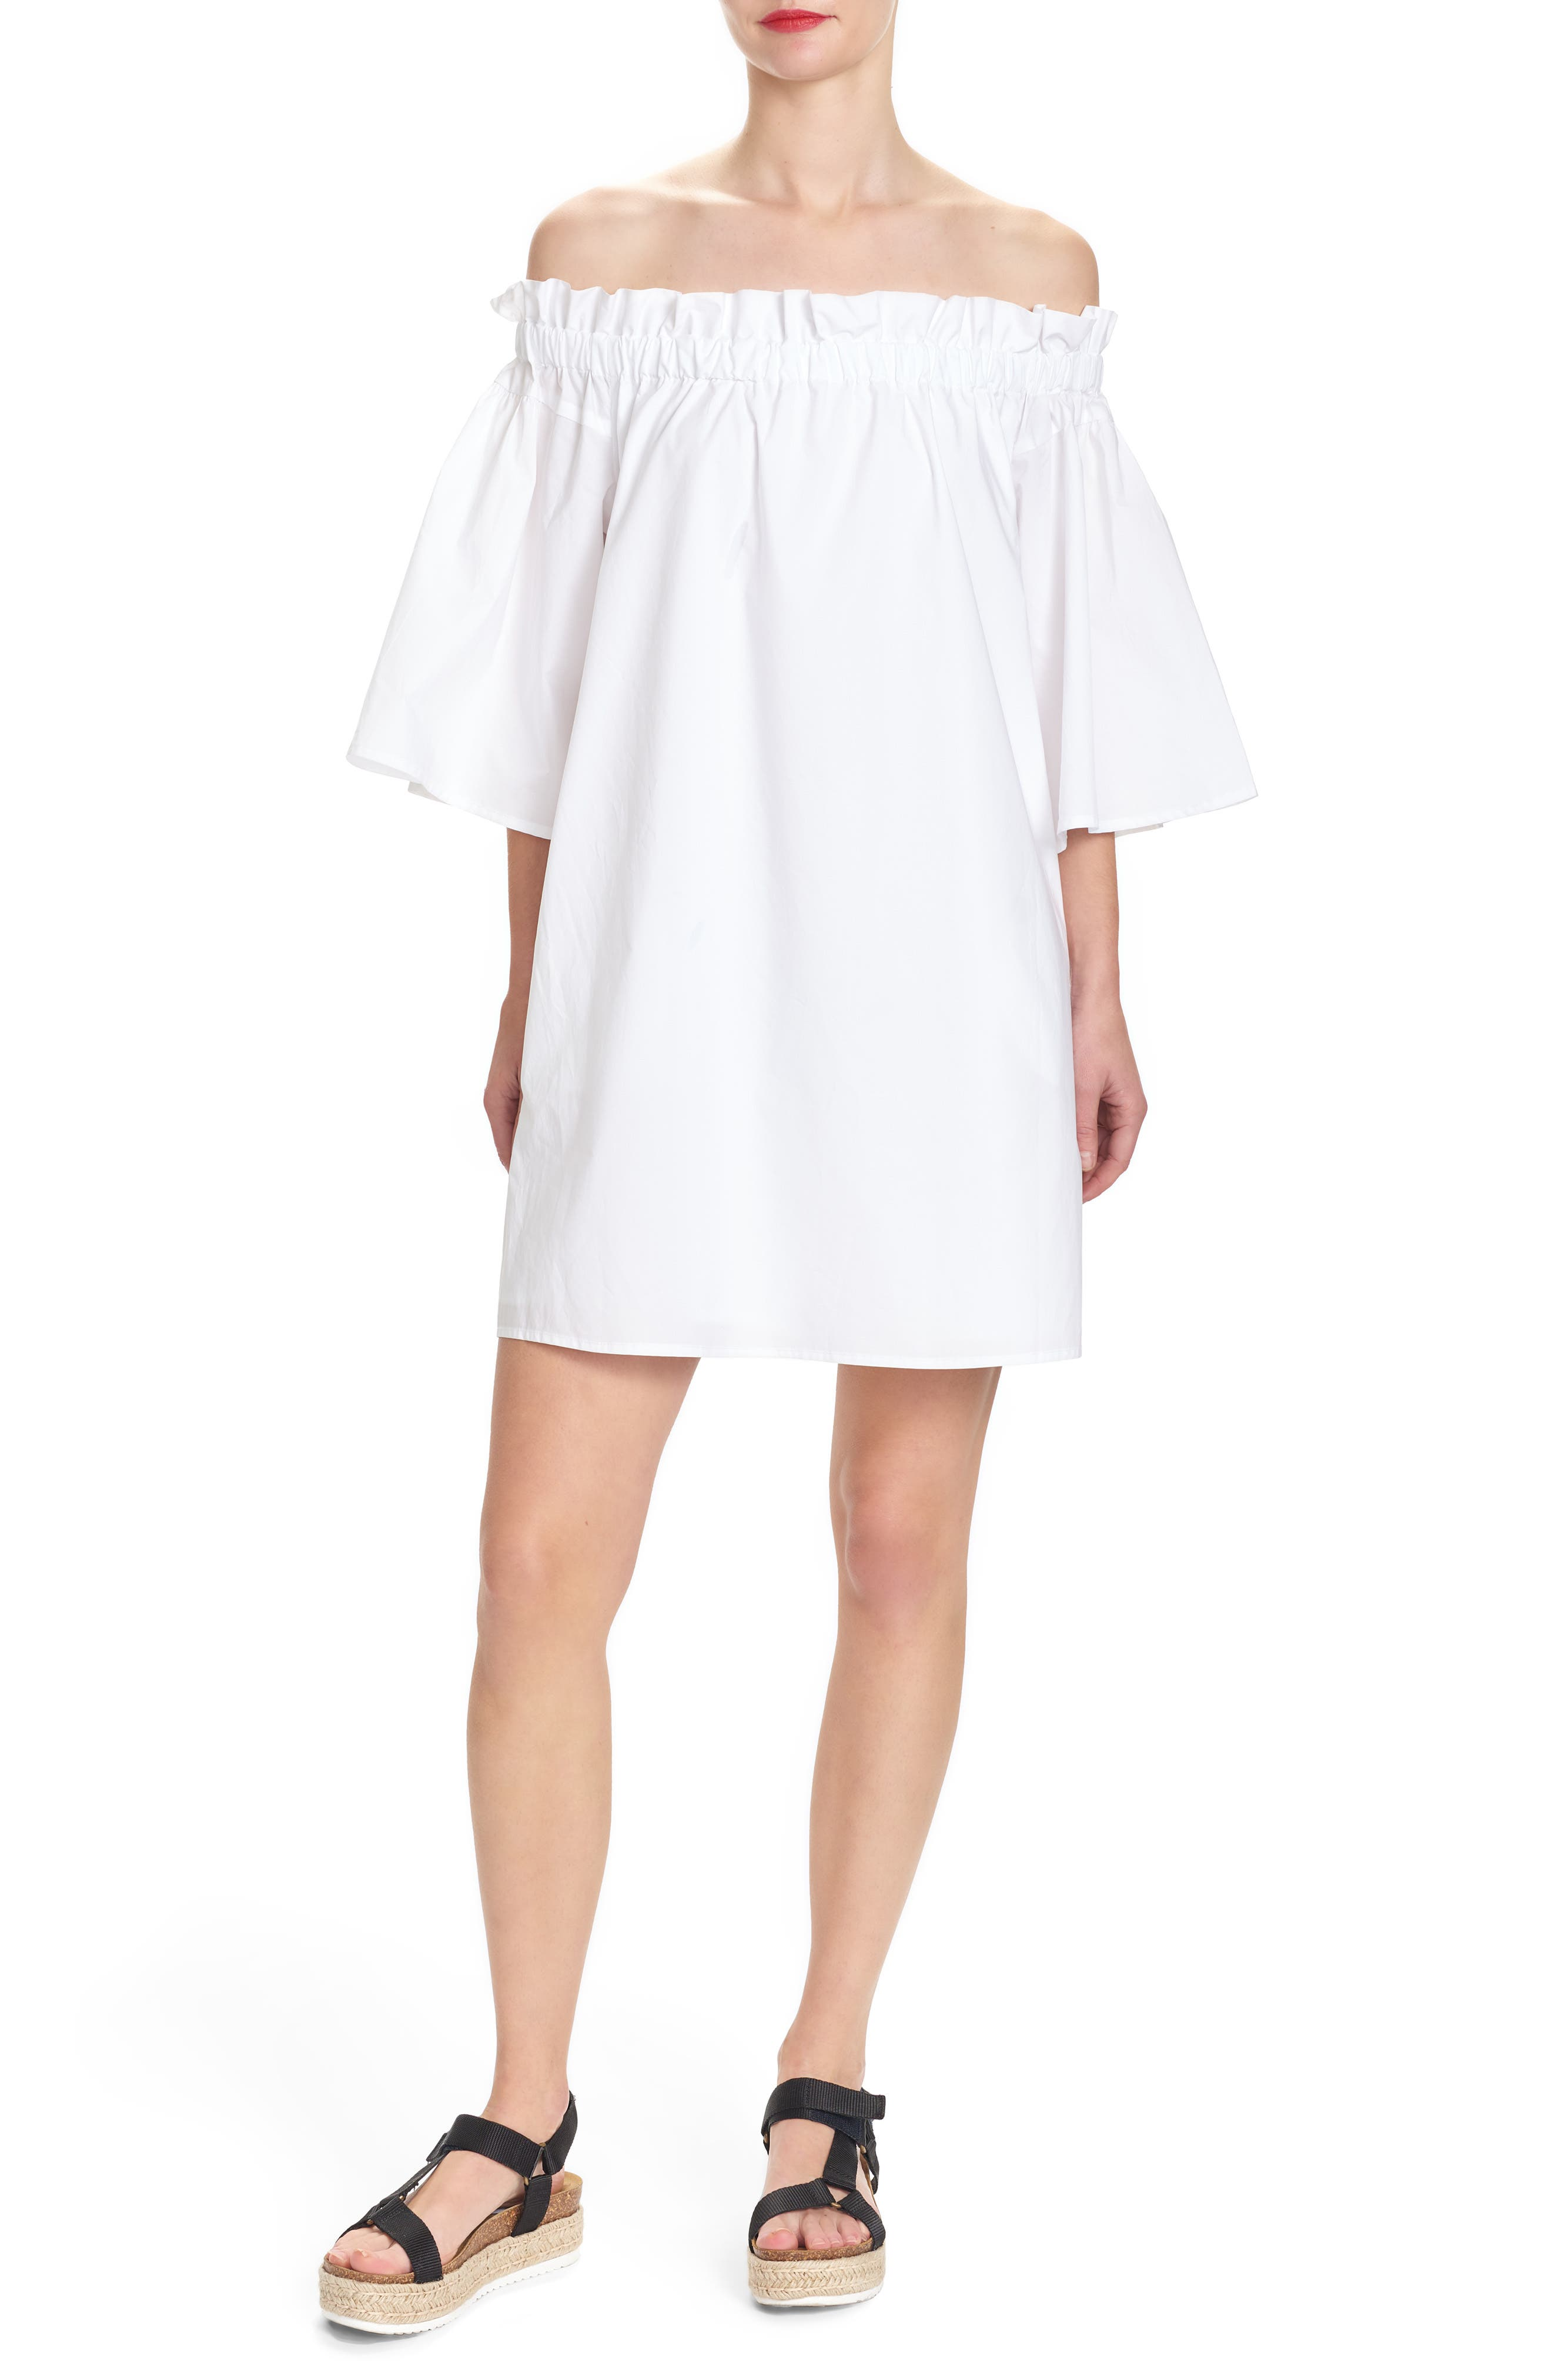 Mary Off The Shoulder Dress